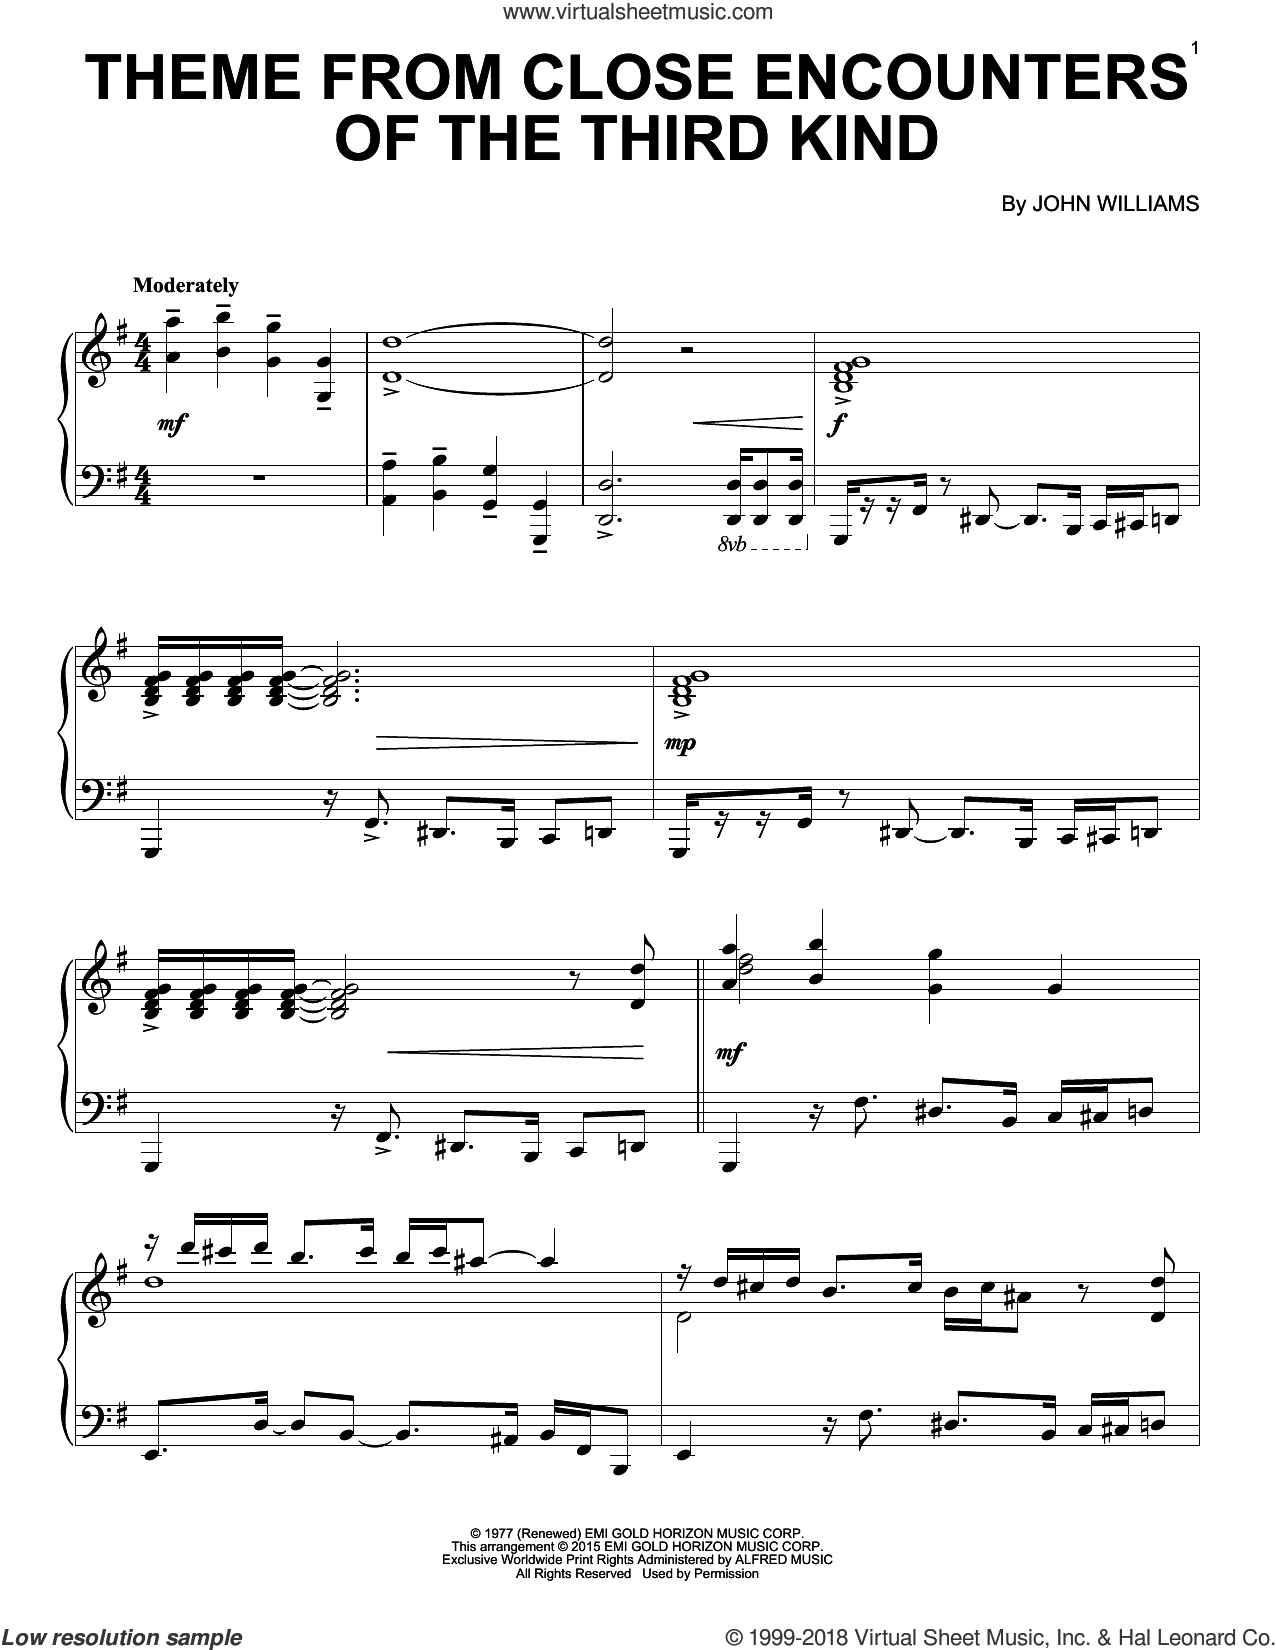 Theme From Close Encounters Of The Third Kind sheet music for piano solo by John Williams